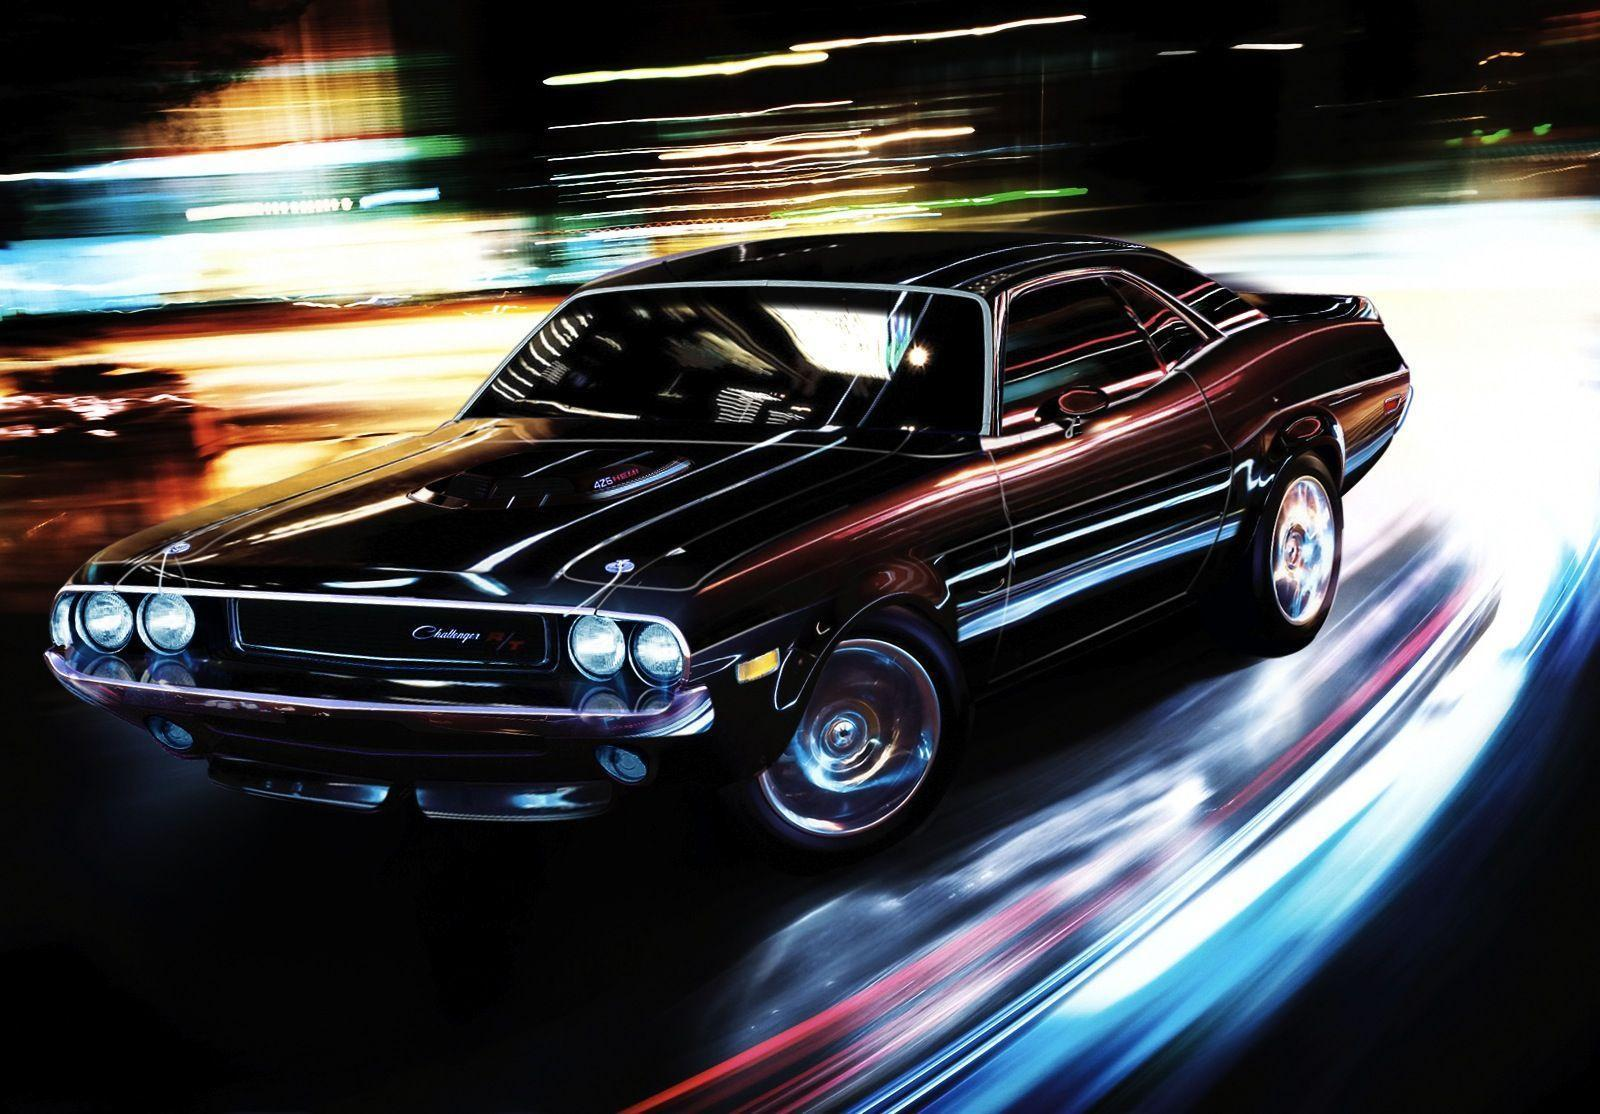 1968 Dodge Charger Wallpaper Cars Dodge Challenger Wallpapers Wallpaper Cave